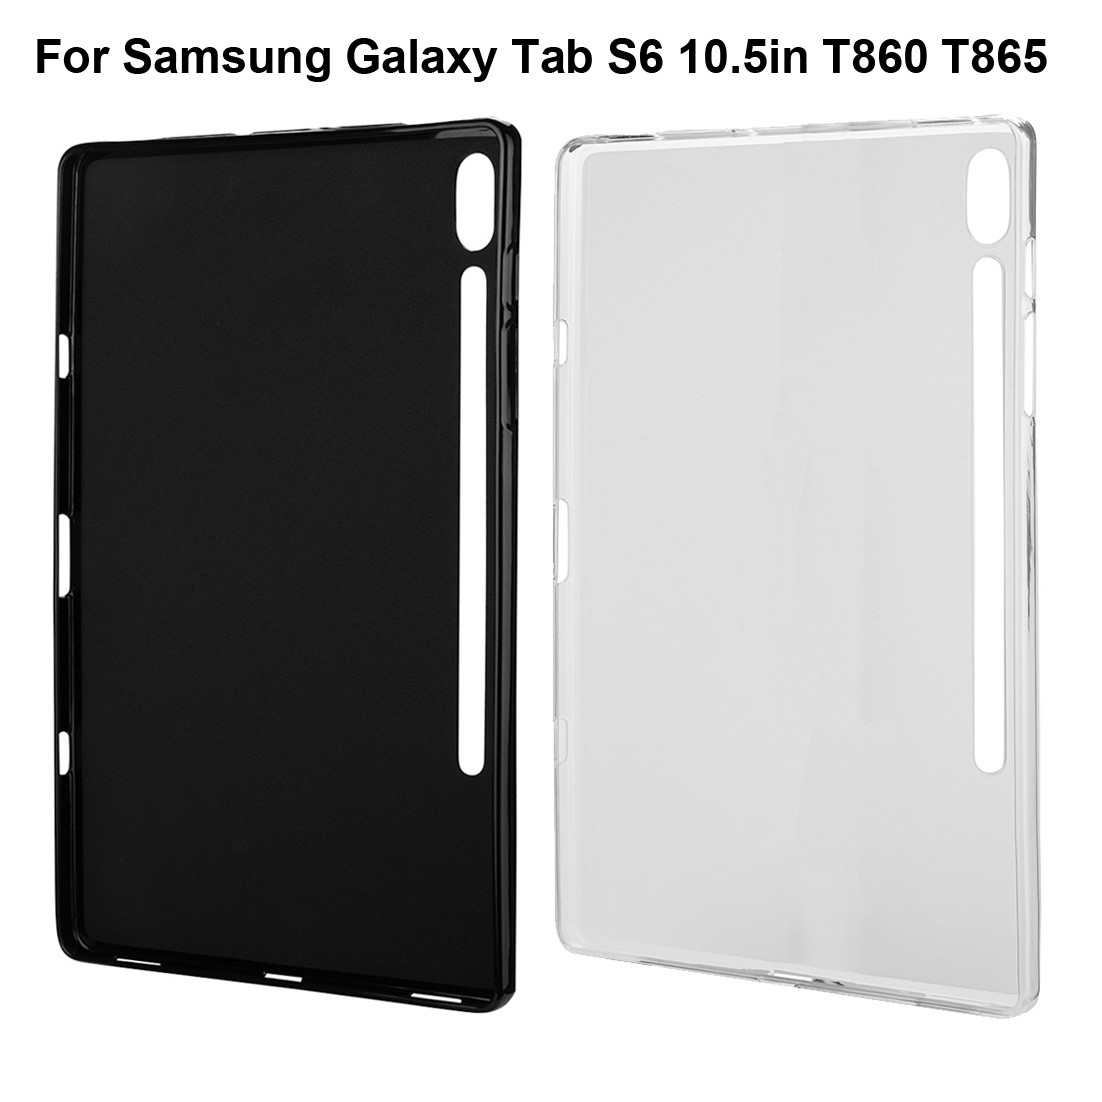 Tablet Case For Samsung Galaxy Tab S6 10.5In T860 T865 Soft Clear TPU Shock-Proof Case Cover Dust-Proof Case